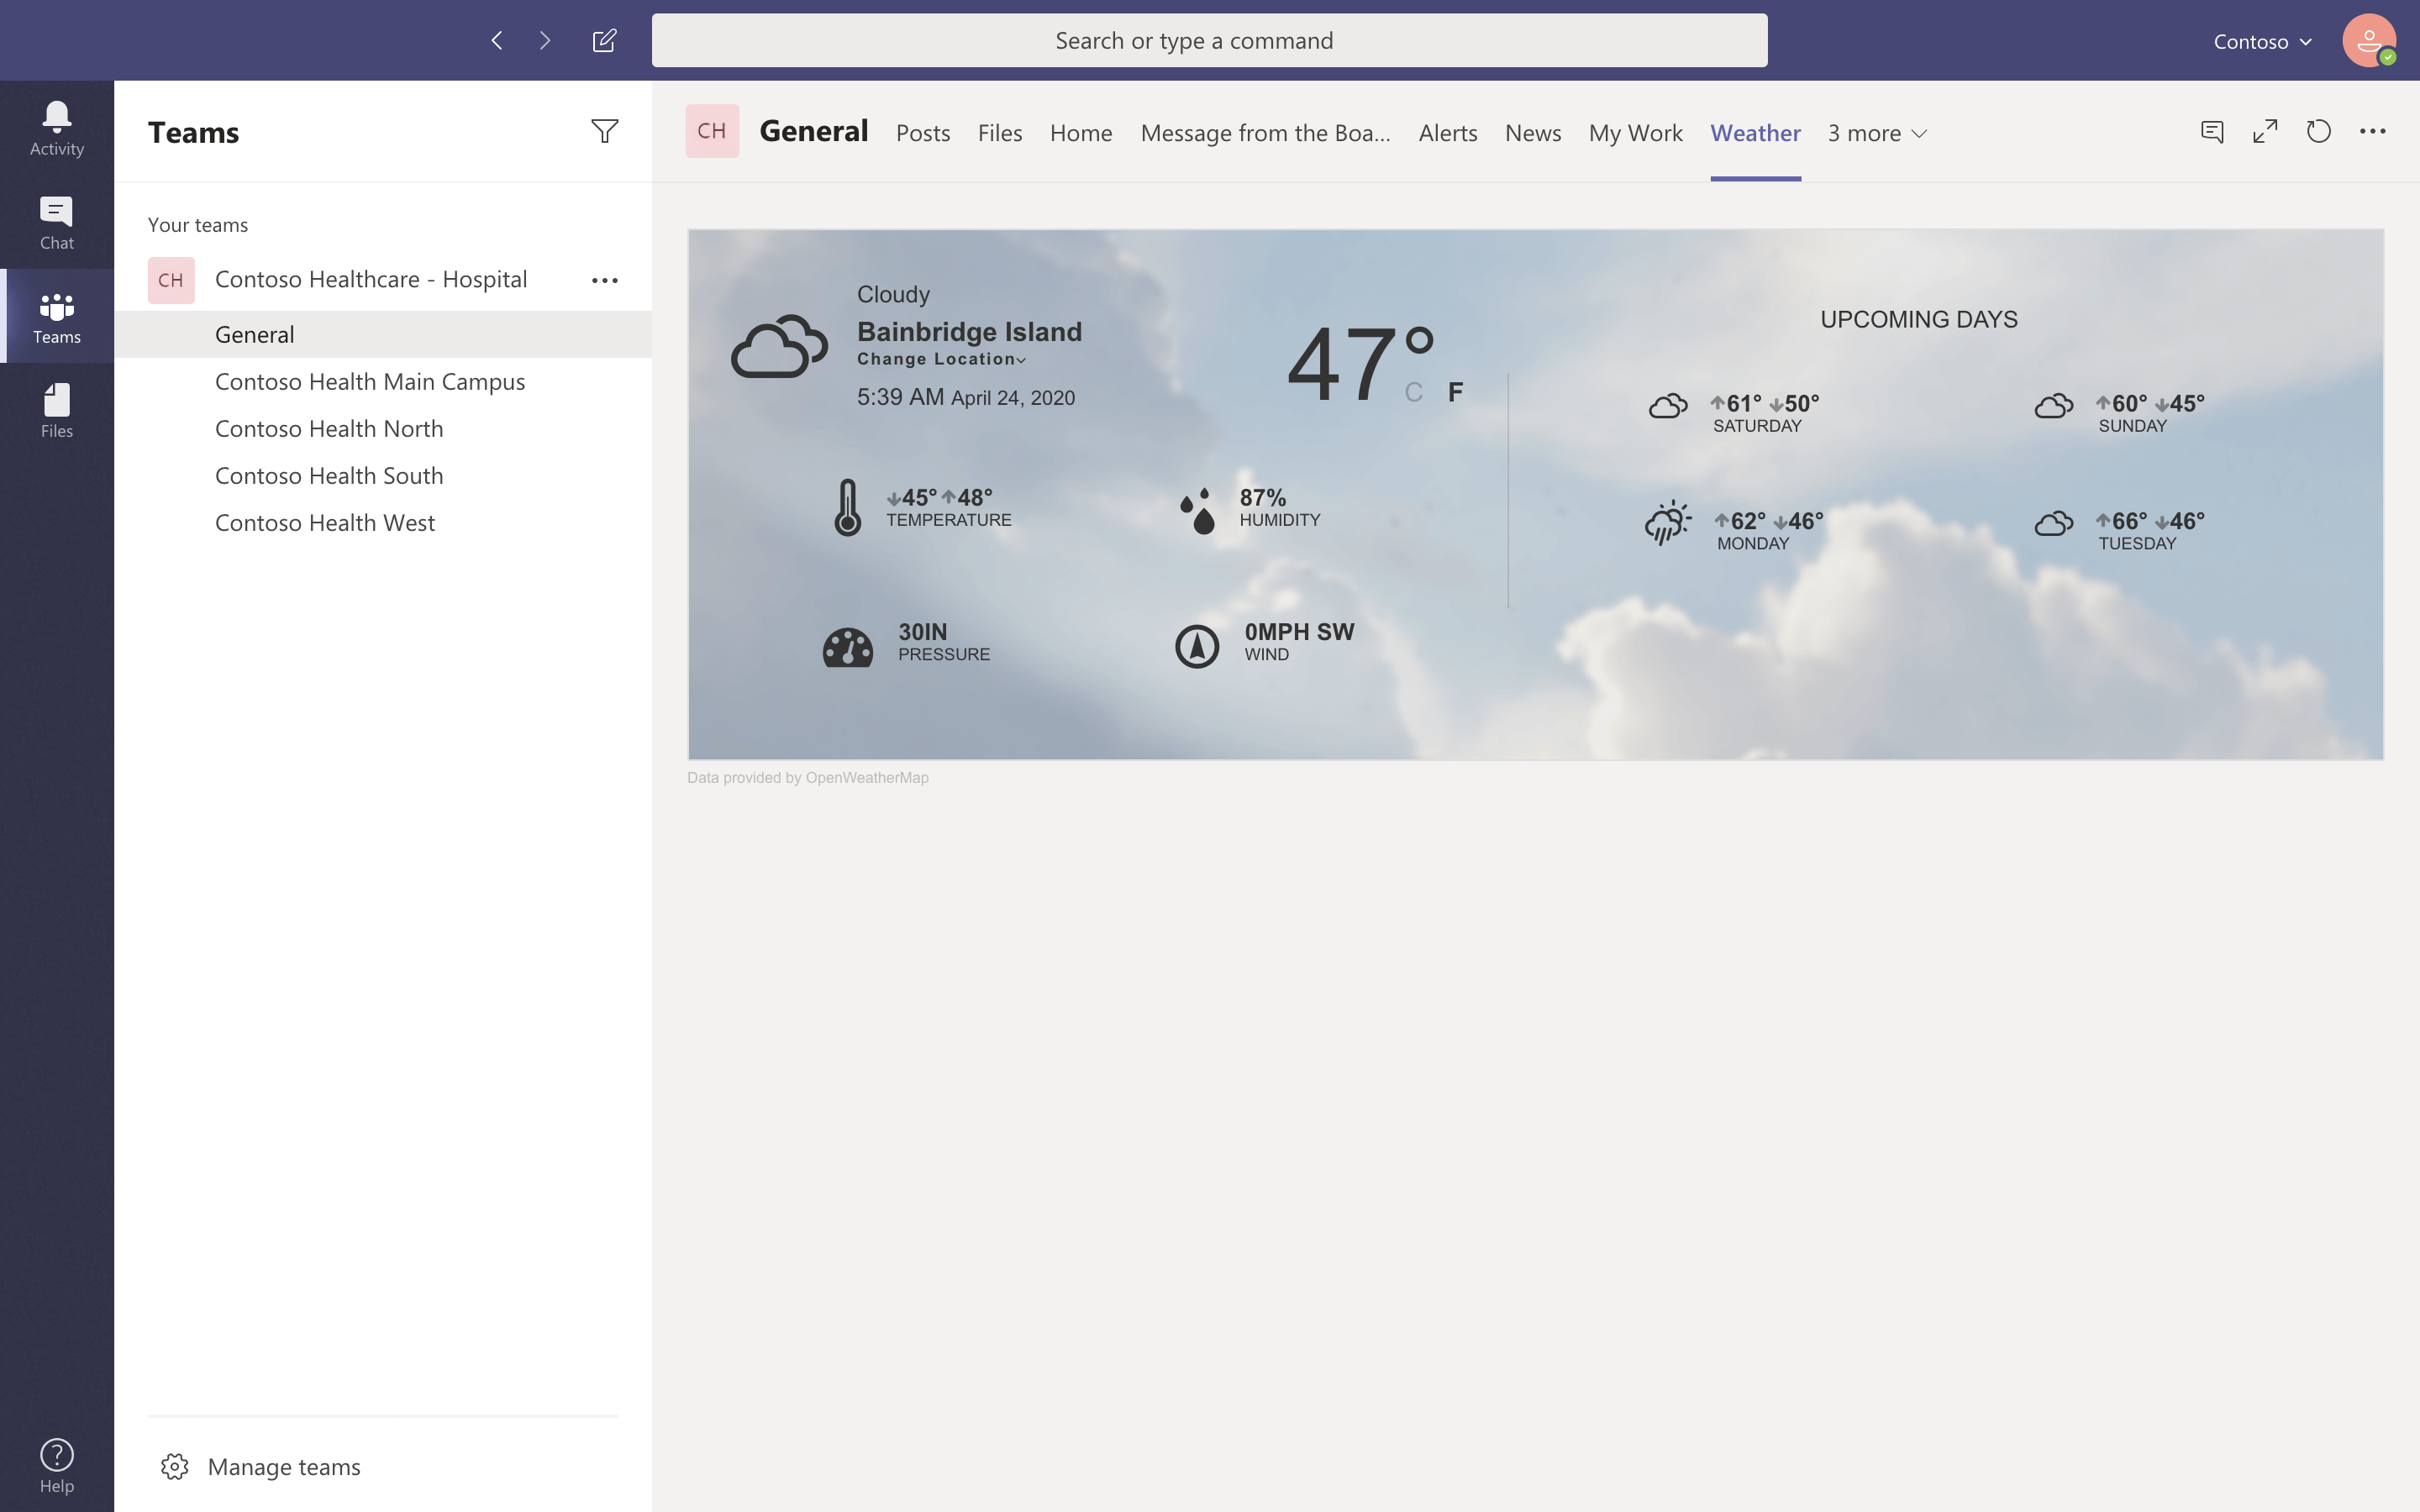 Personalized weather based on location